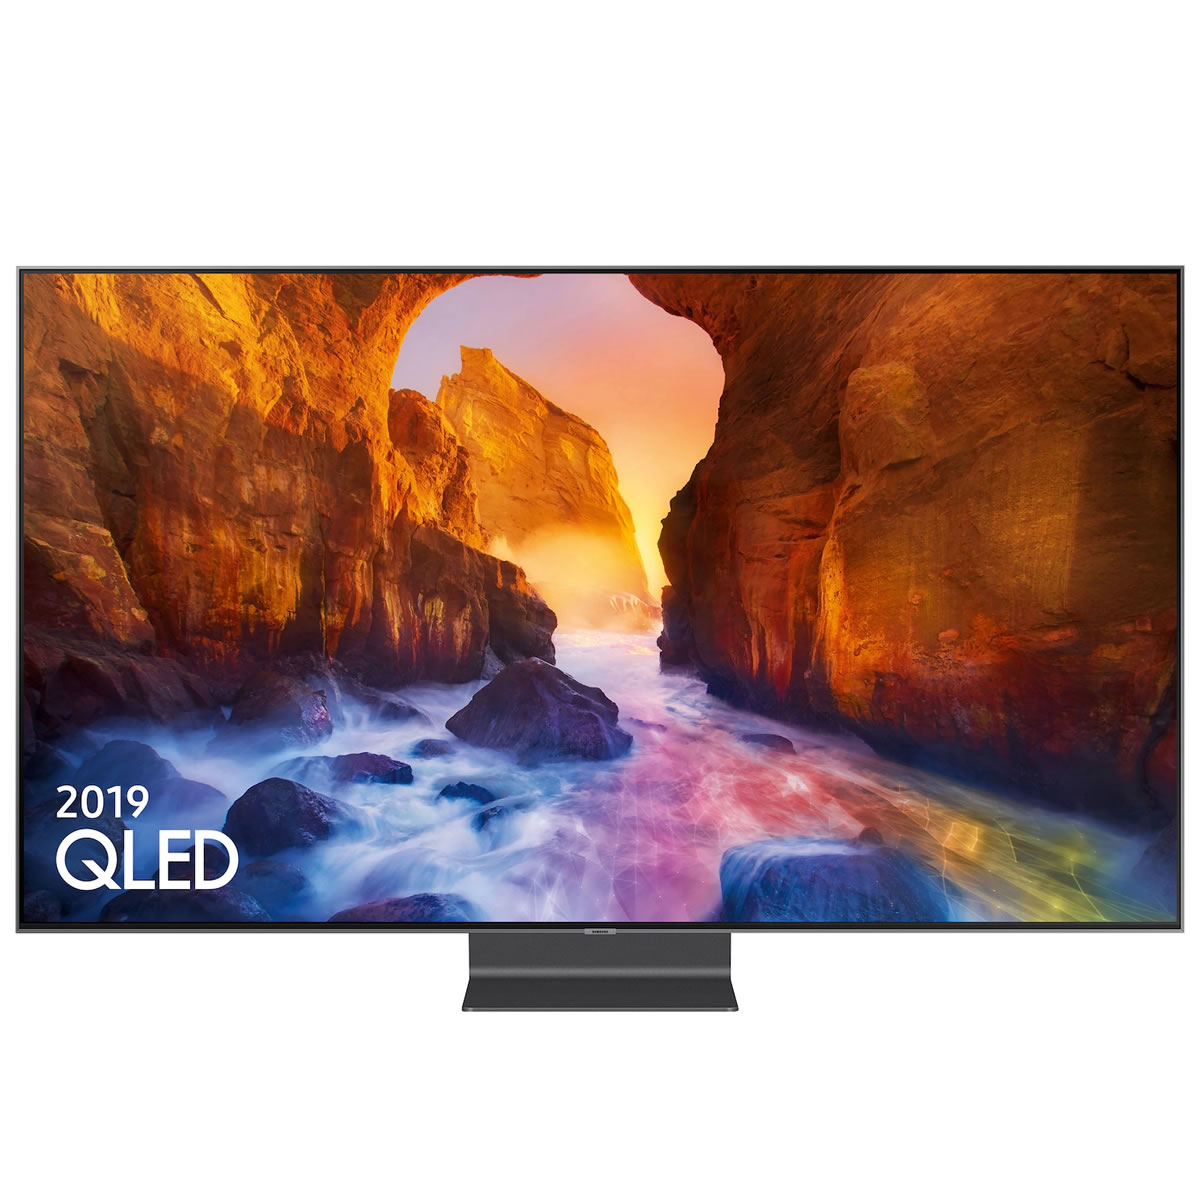 Image of 55inch QLED UHD 4K HDR2000 SMART TV